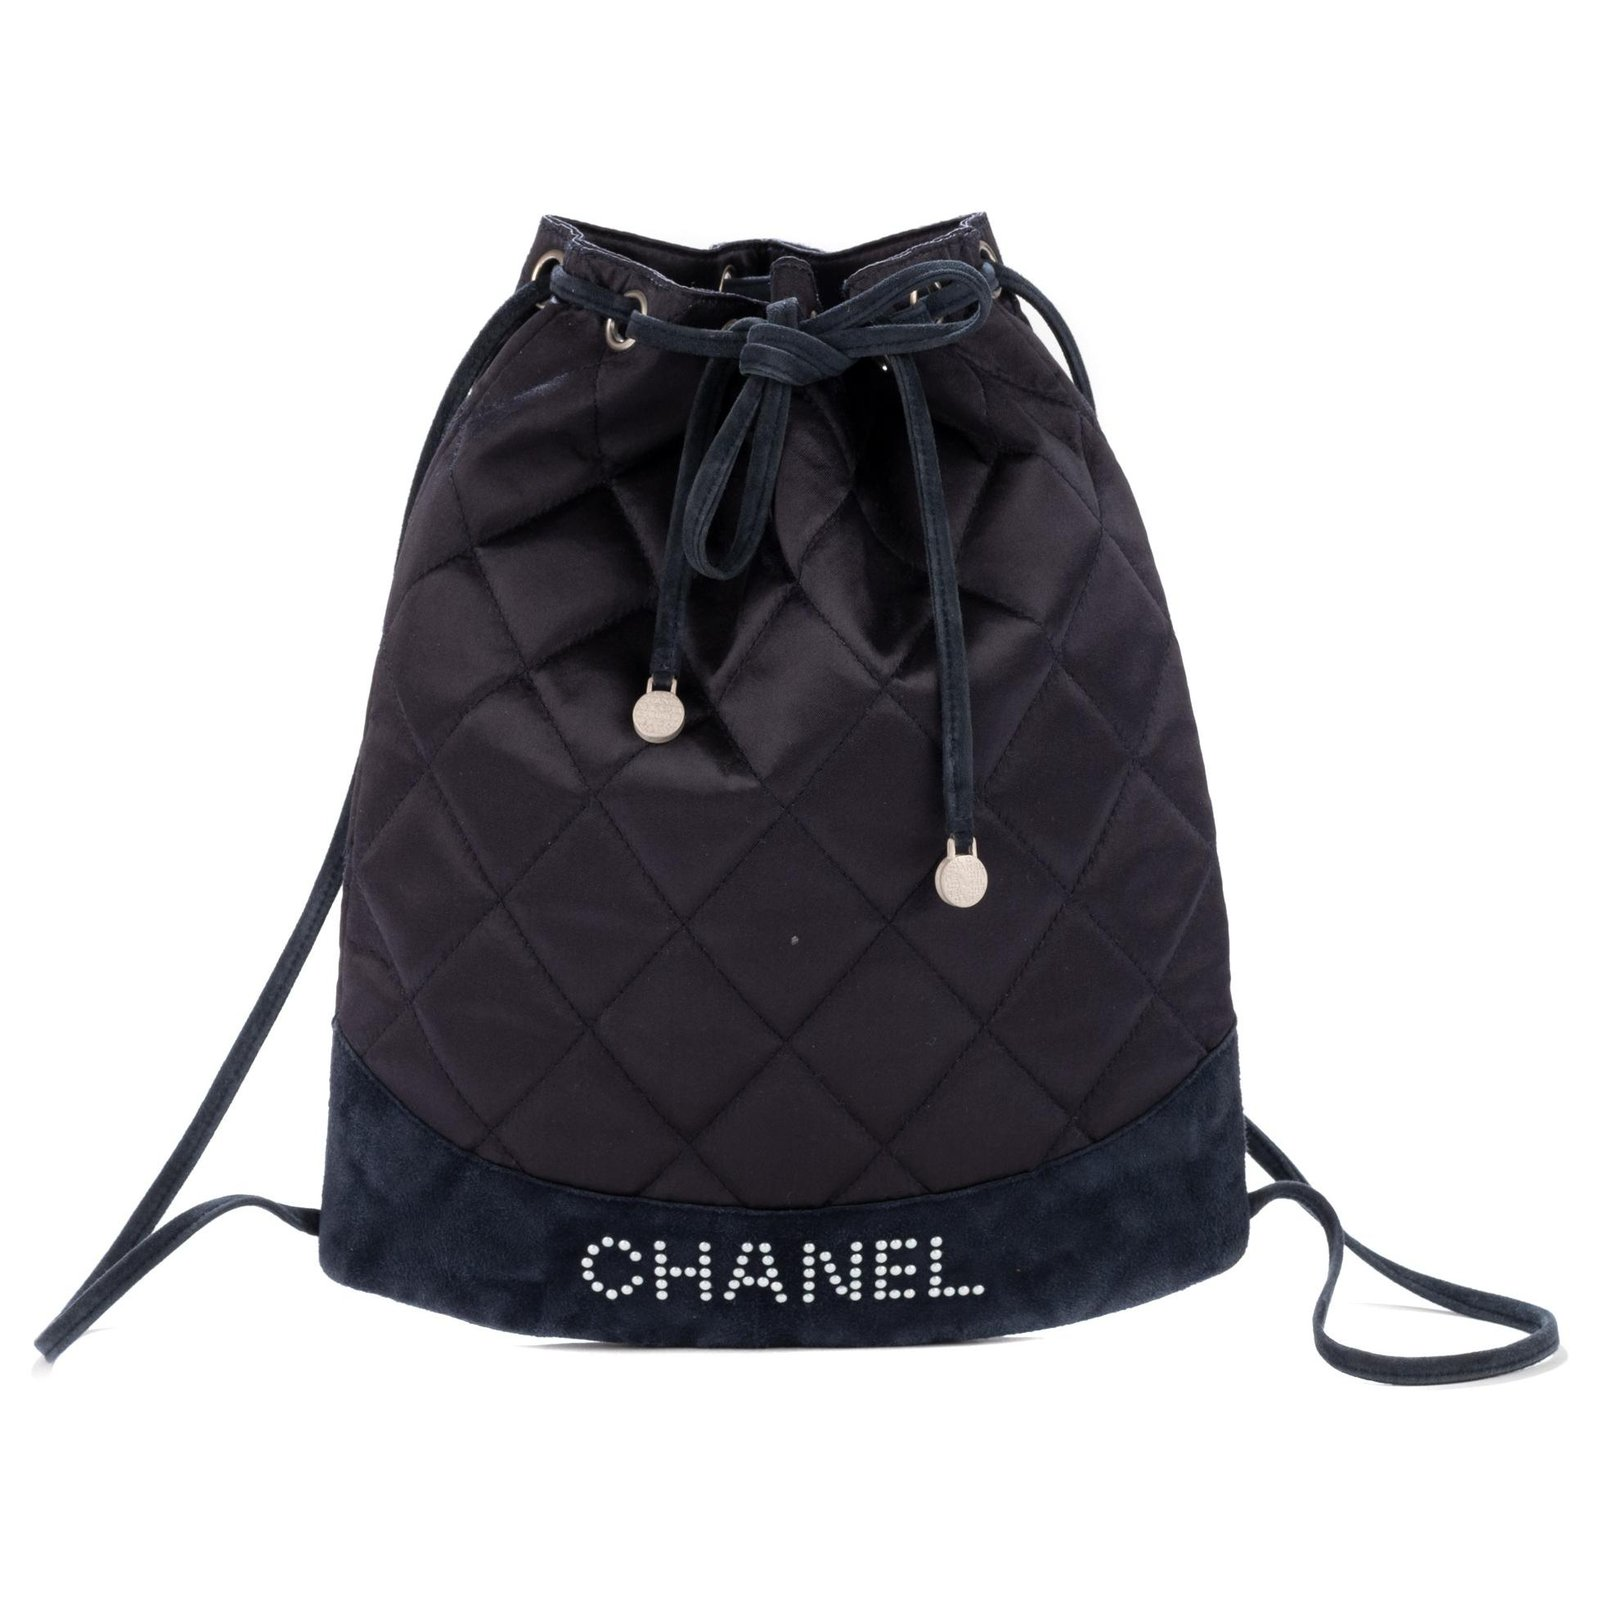 12d6aef89c1679 Chanel, Chanel backpack in satin and navy suede, Chanel logo in pearls,  good condition !